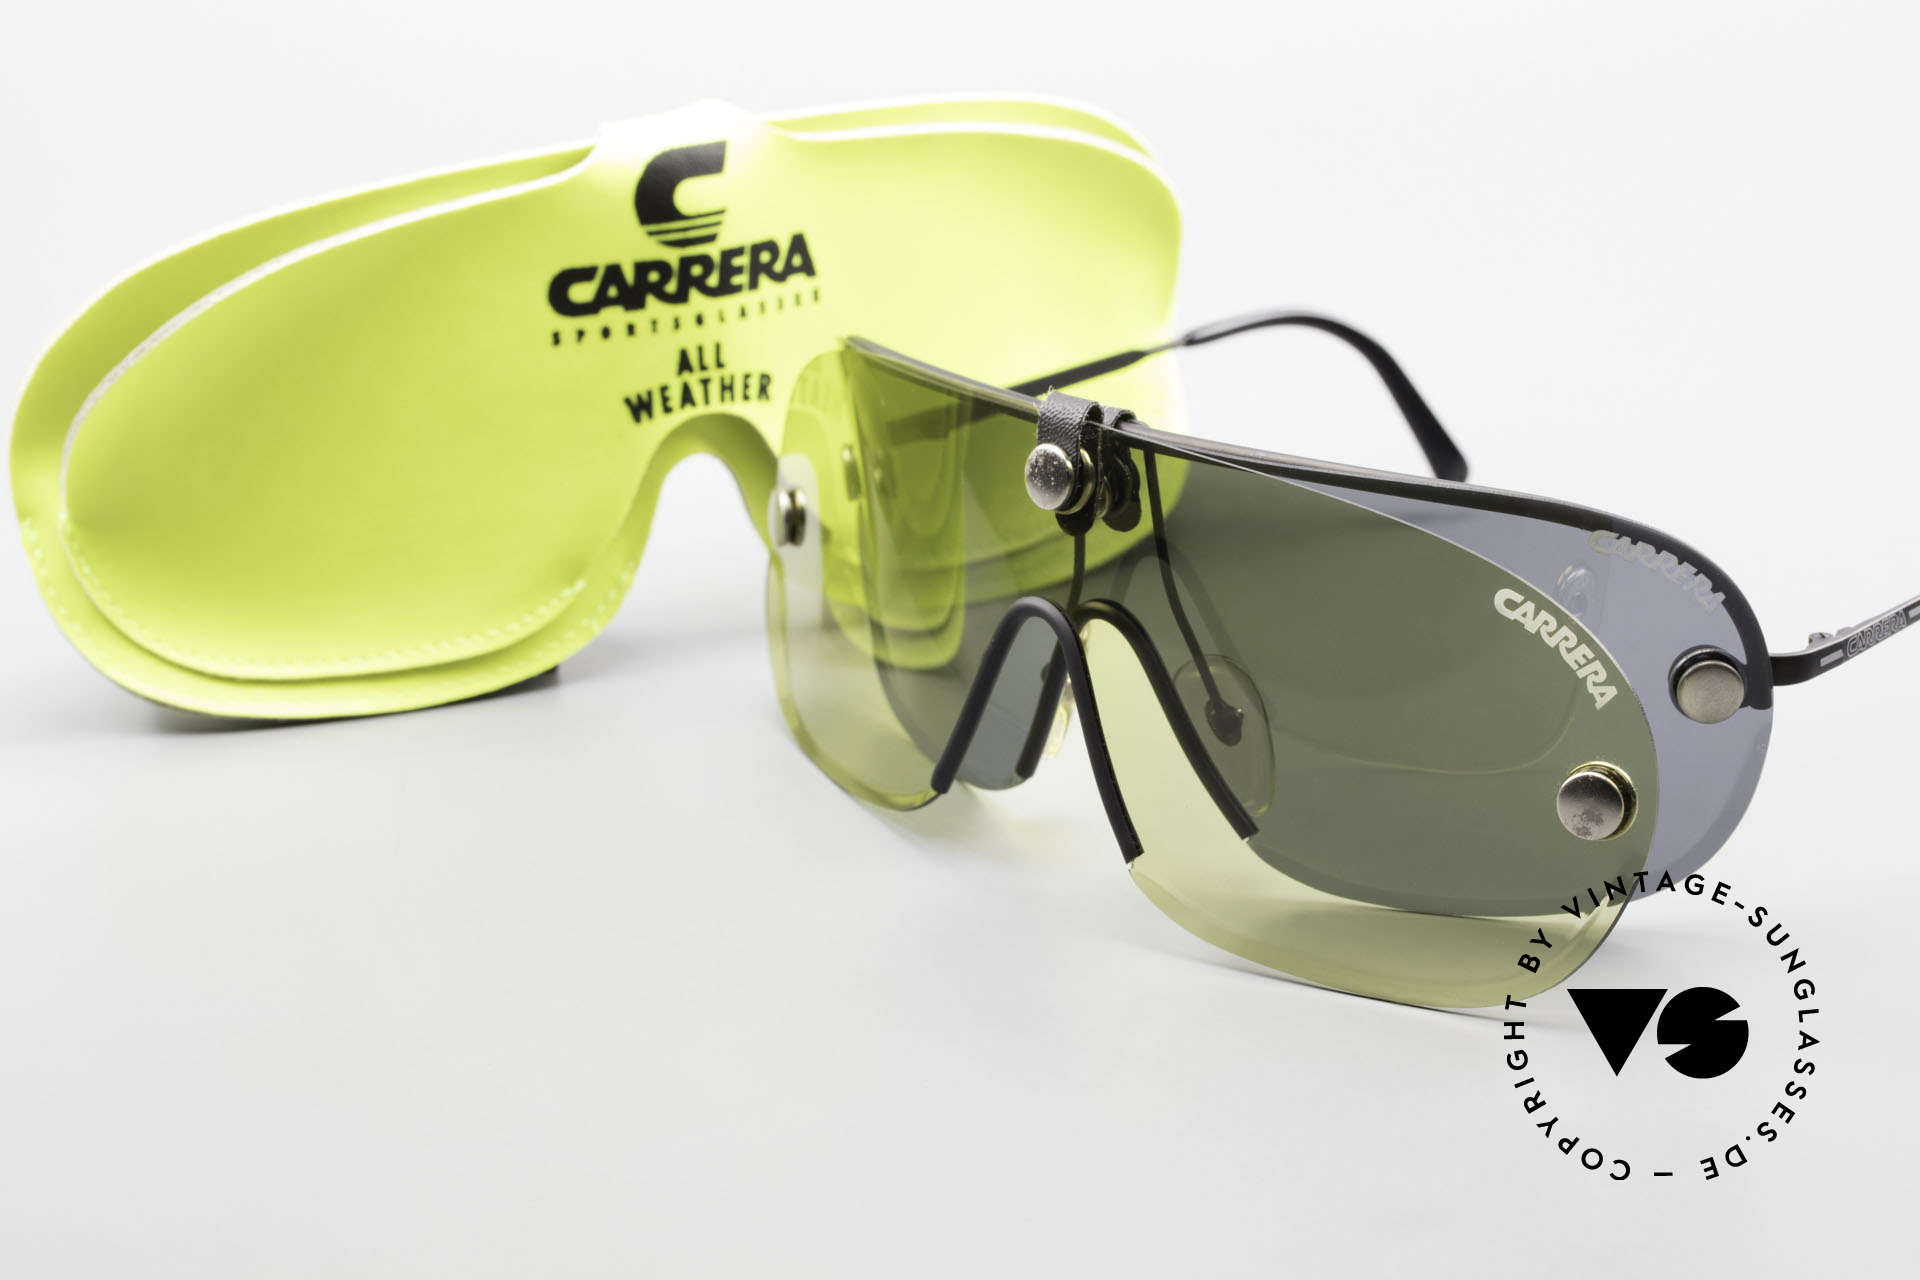 Carrera 5418 All Weather Shades Polarized, NO RETRO sunglasses, but an authentic OLD ORIGINAL!, Made for Men